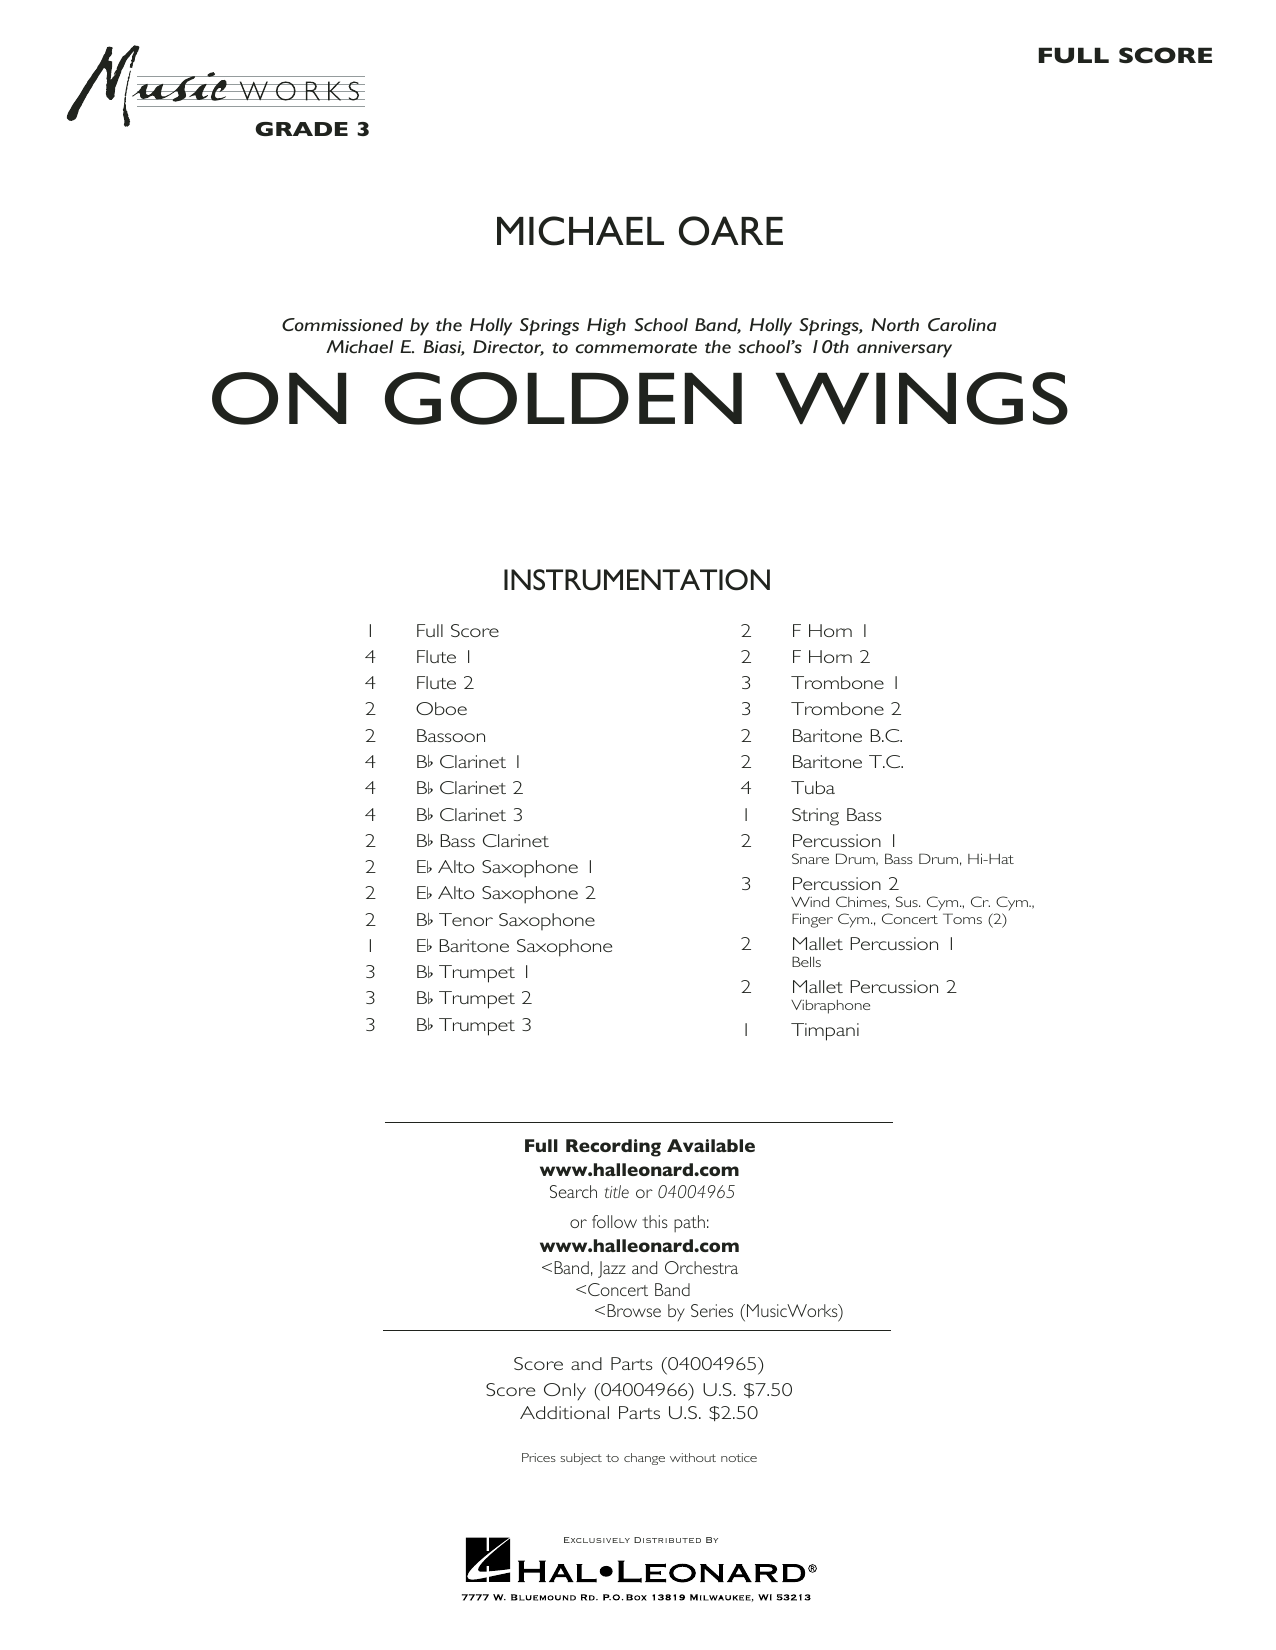 Michael Oare On Golden Wings - Conductor Score (Full Score) sheet music notes and chords. Download Printable PDF.